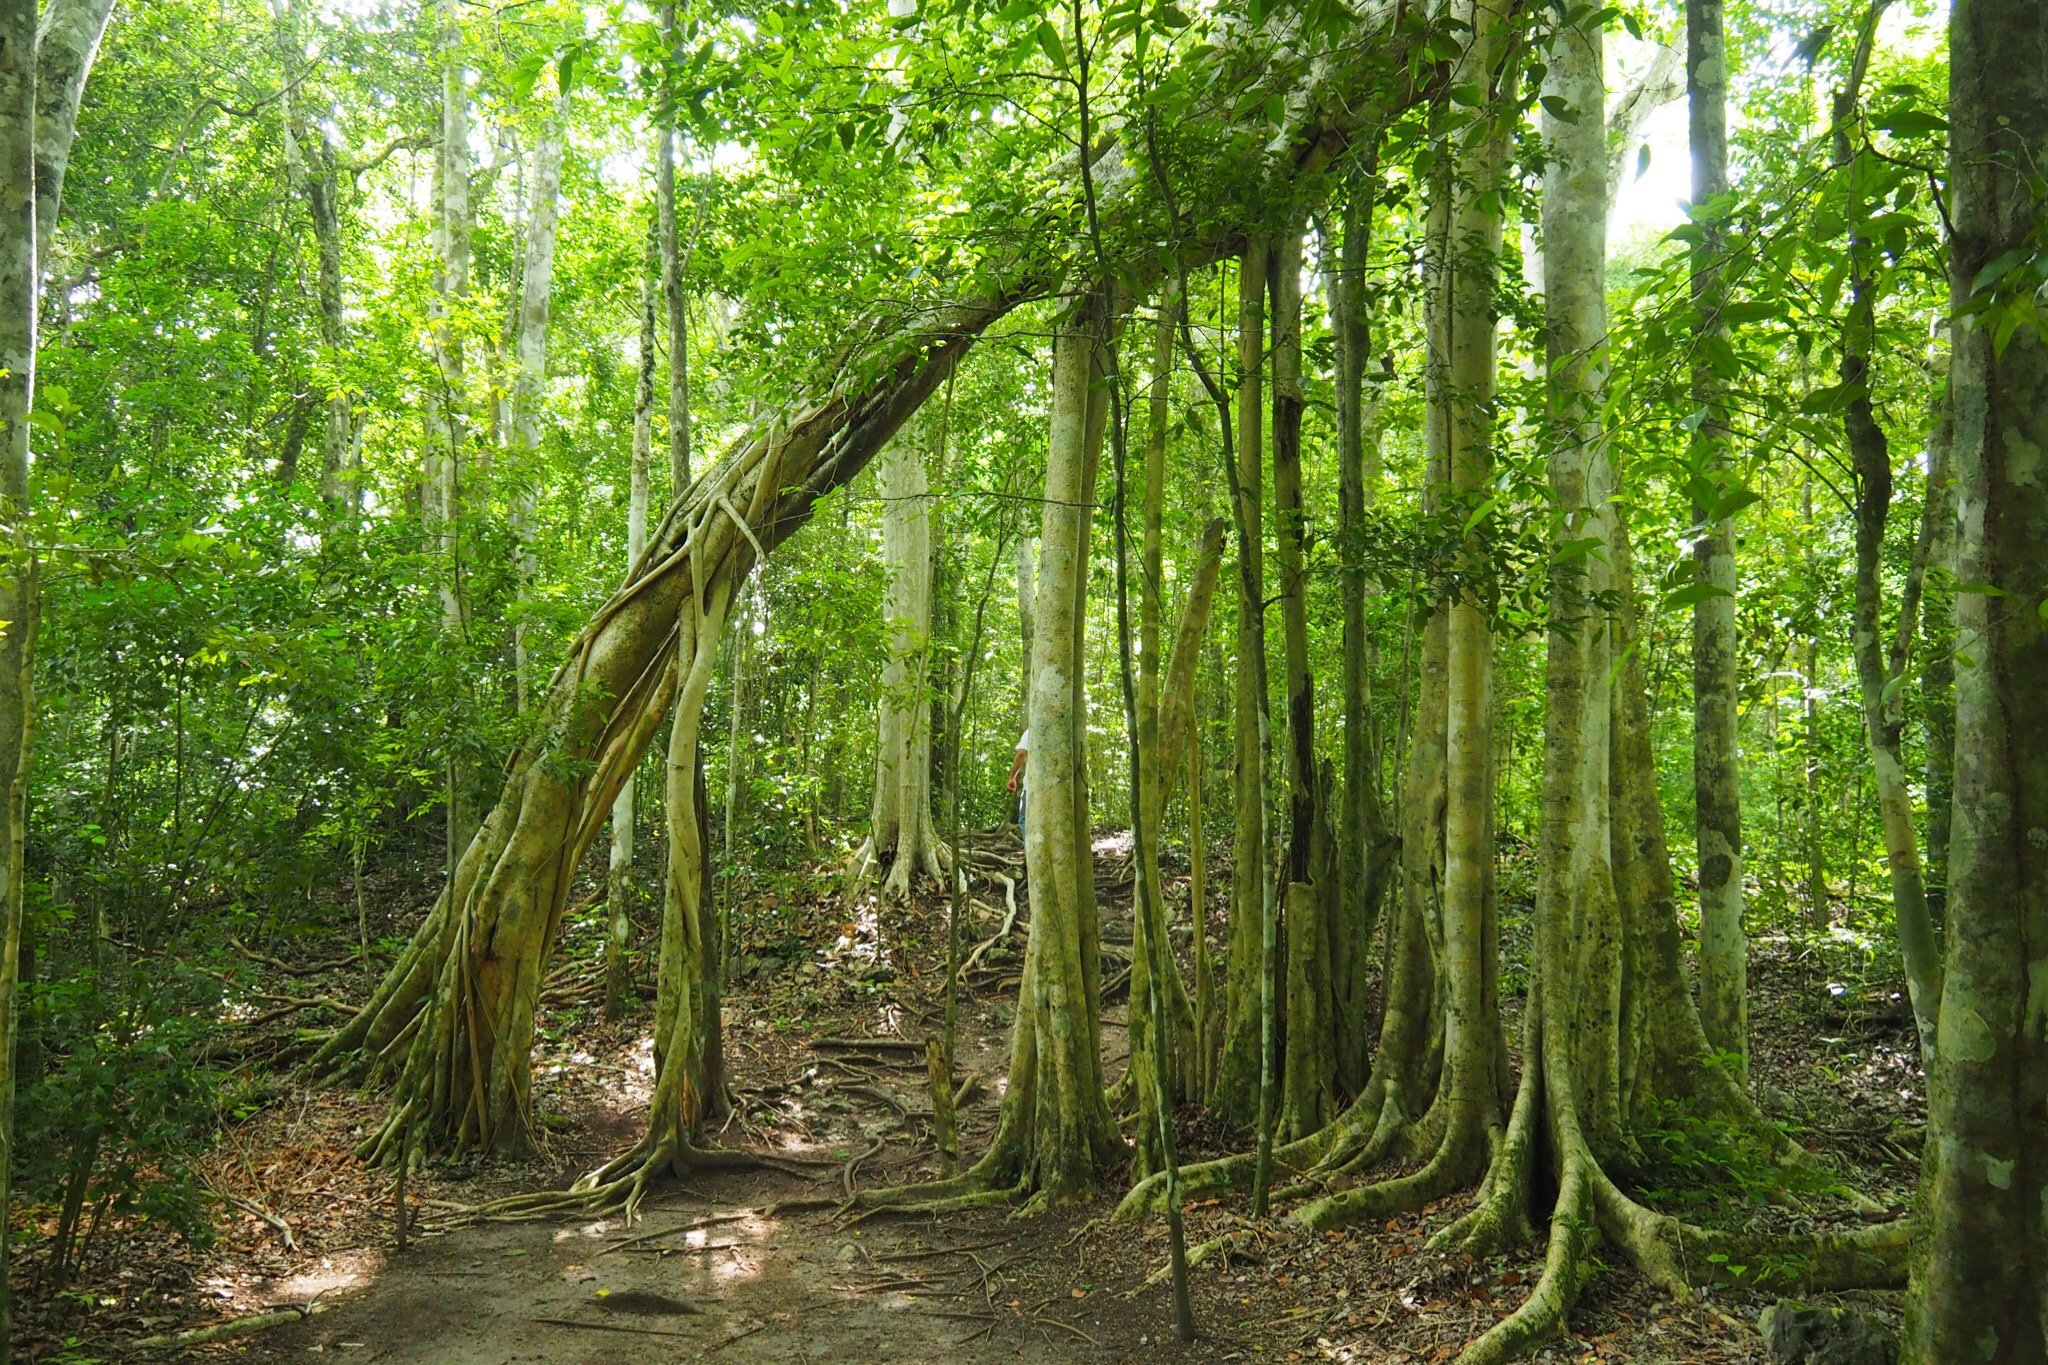 Trees at Petén, Guatemala